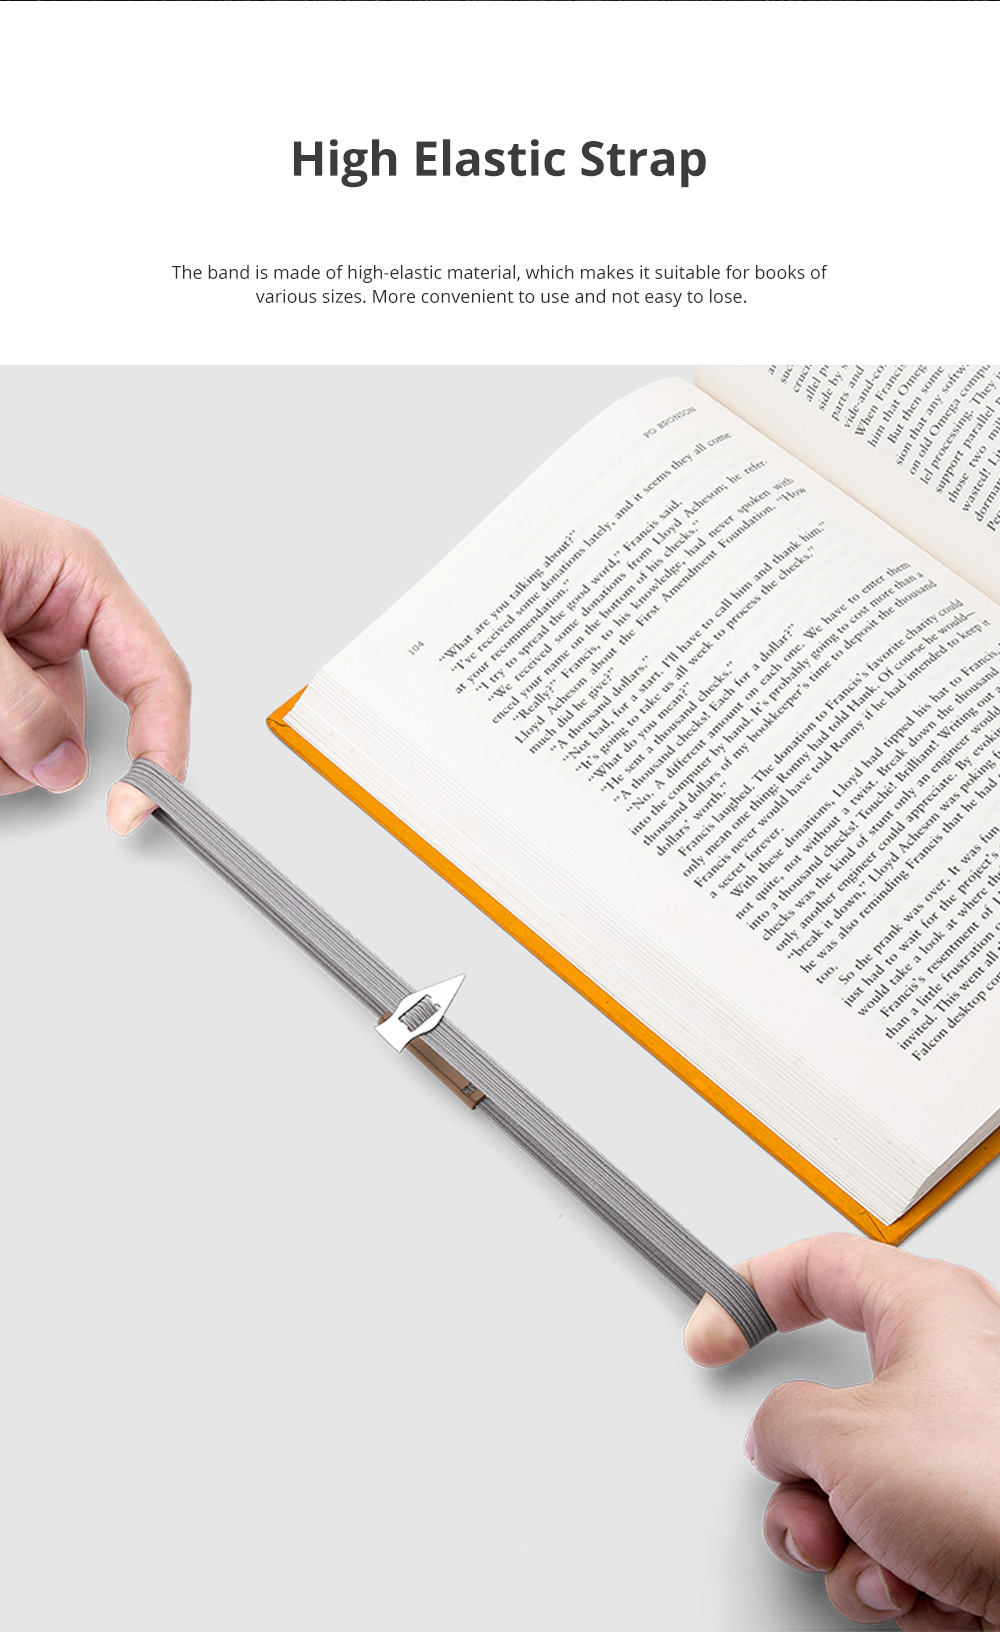 Reusable Arrow Bookmark with High Elastic Strap and Precise Navigation for School Supplies Stationery 2pcs 1